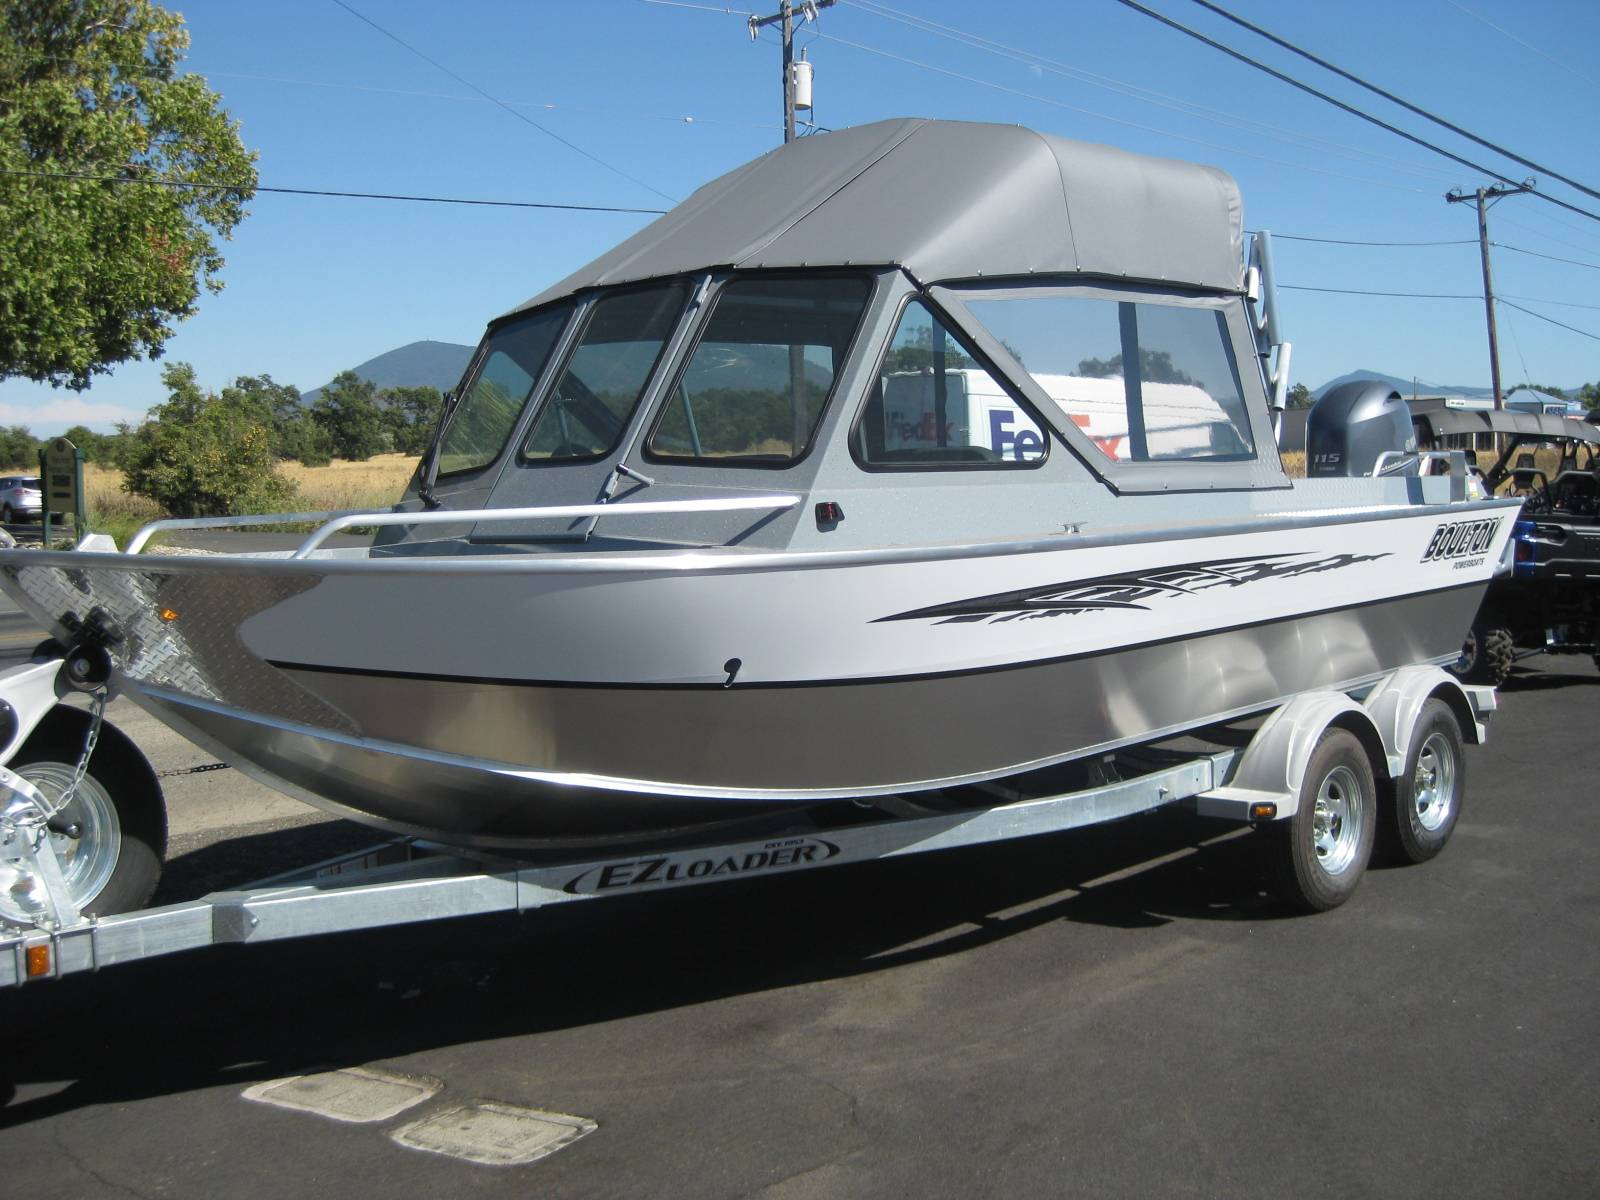 2018 Boulton Powerboats SKIFF 20 in Lakeport, California